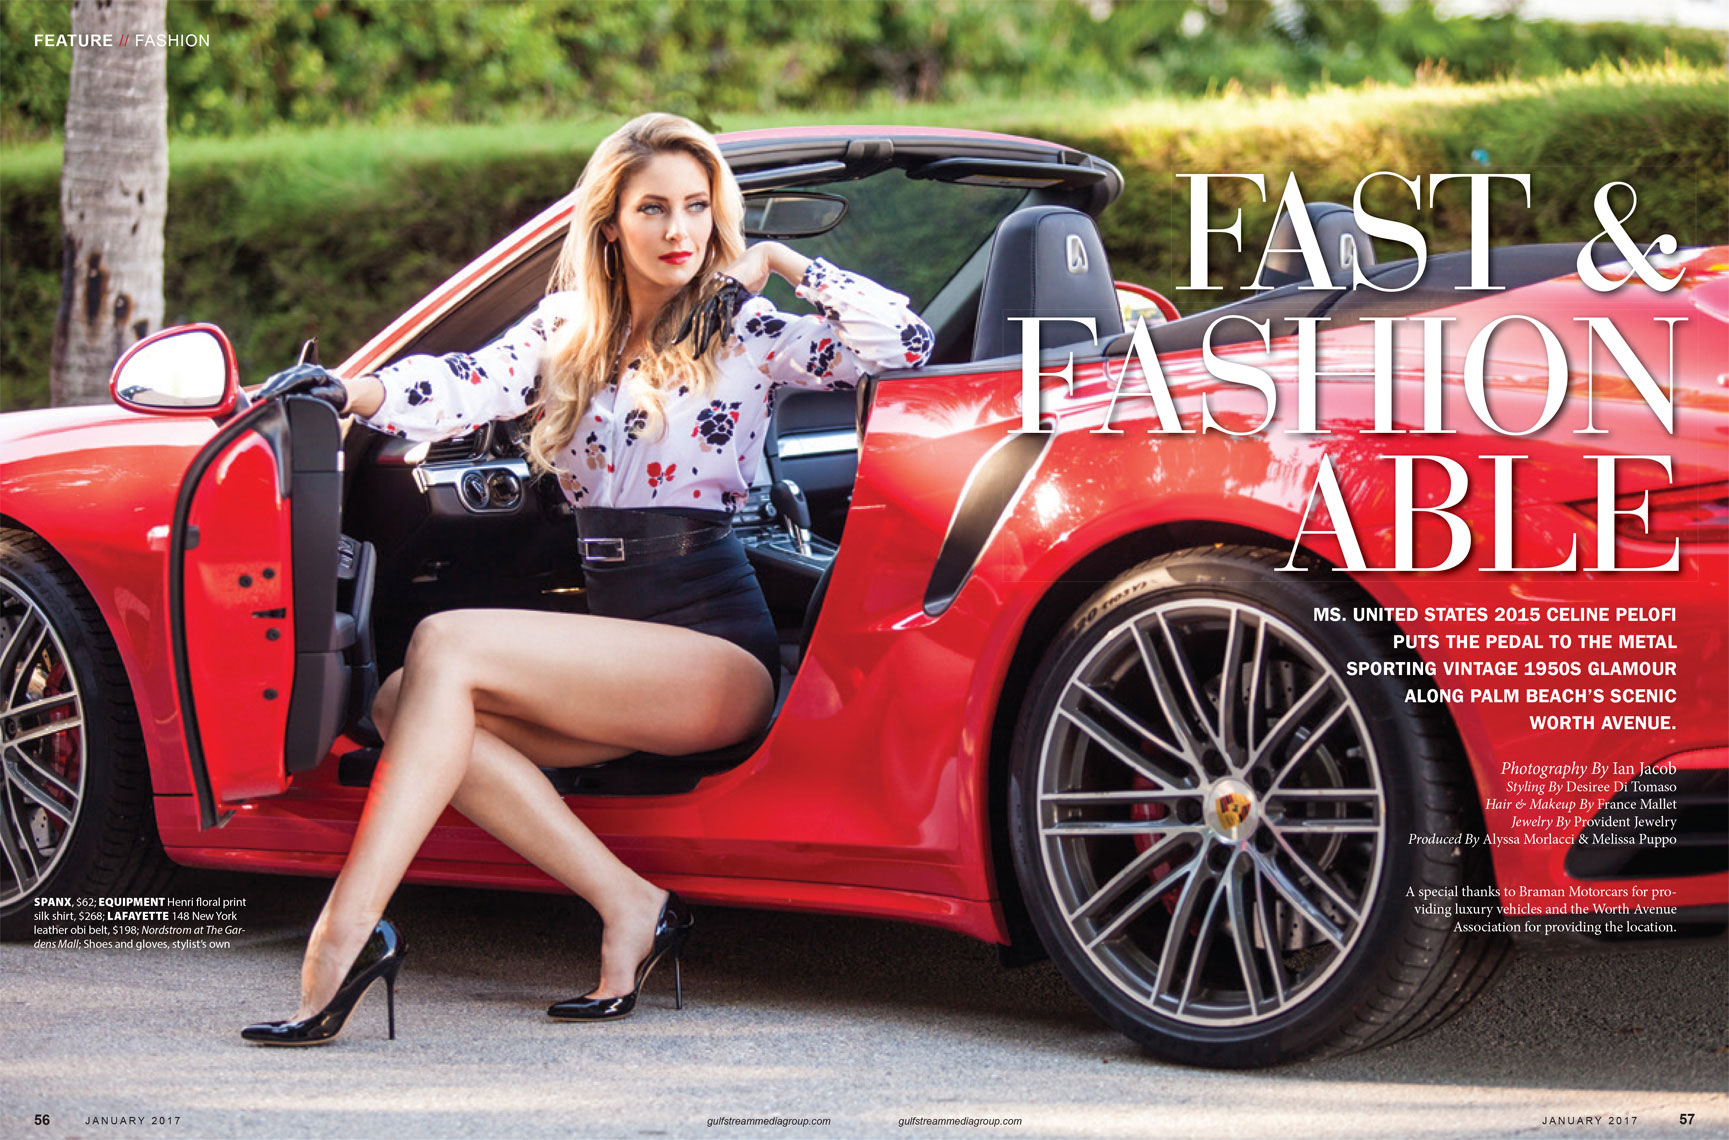 Fast-and-Fashionable-spread-1